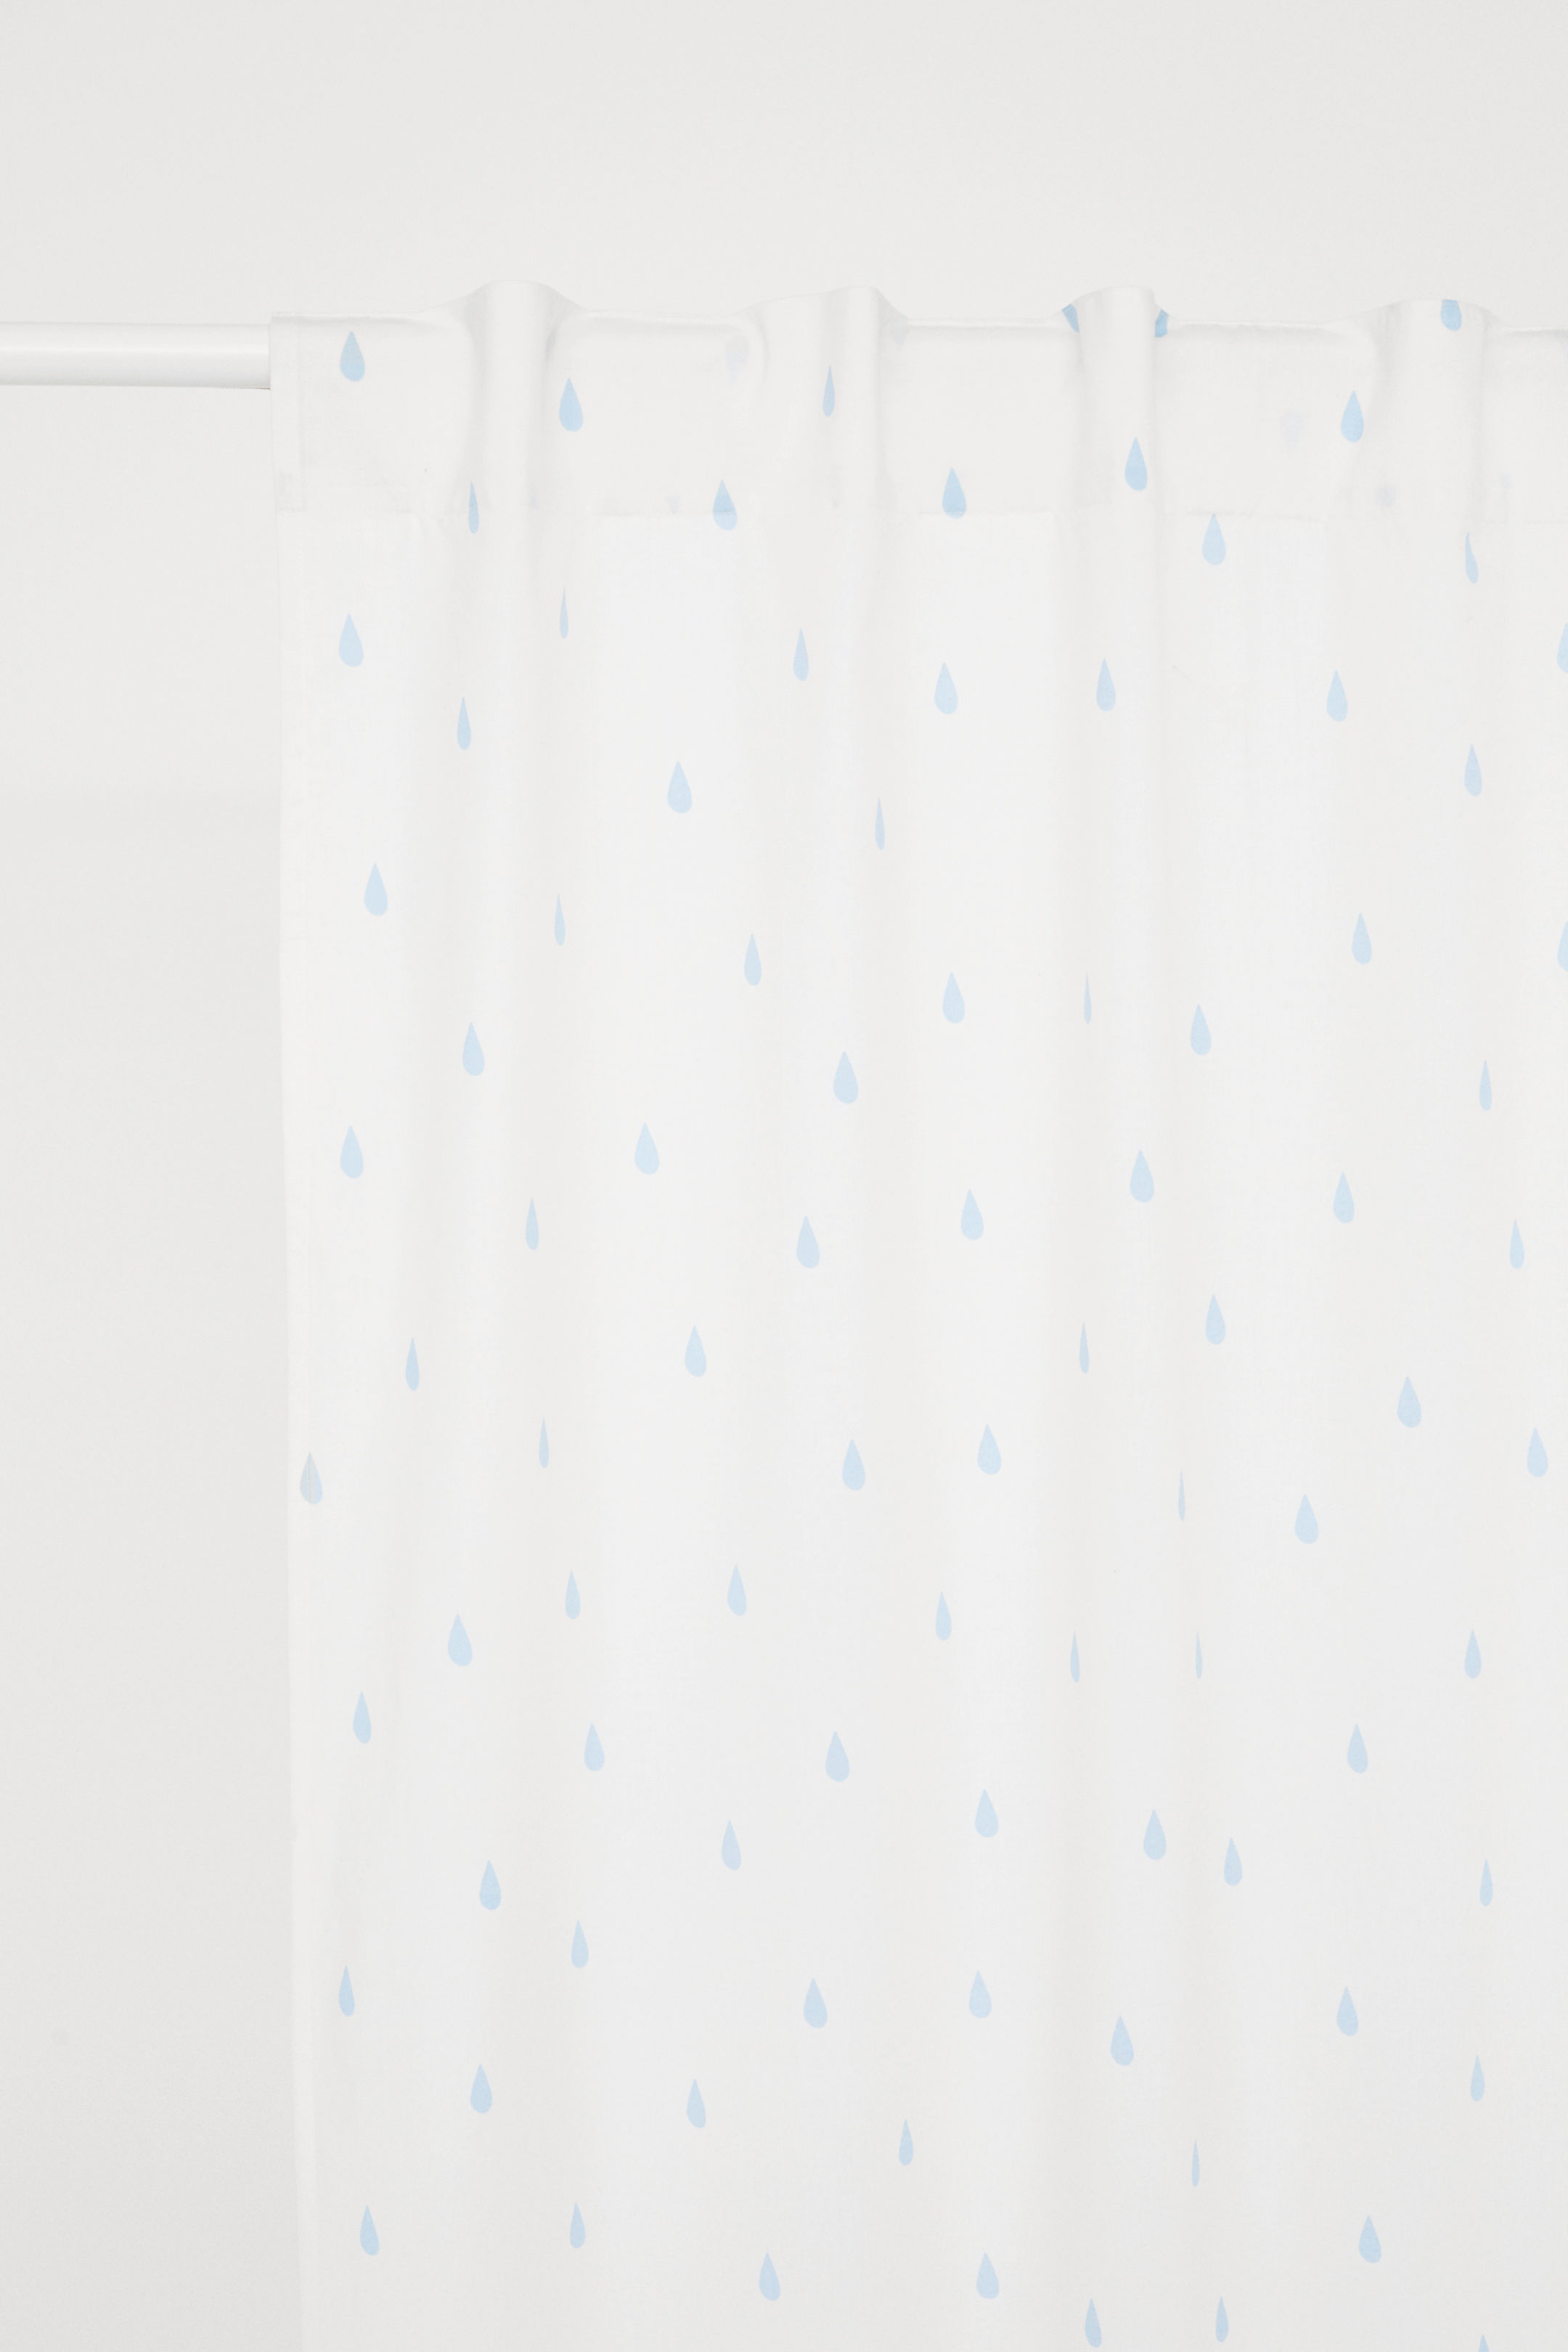 french blue and white fun coastal look - these teardrop curtain panels are fantastic